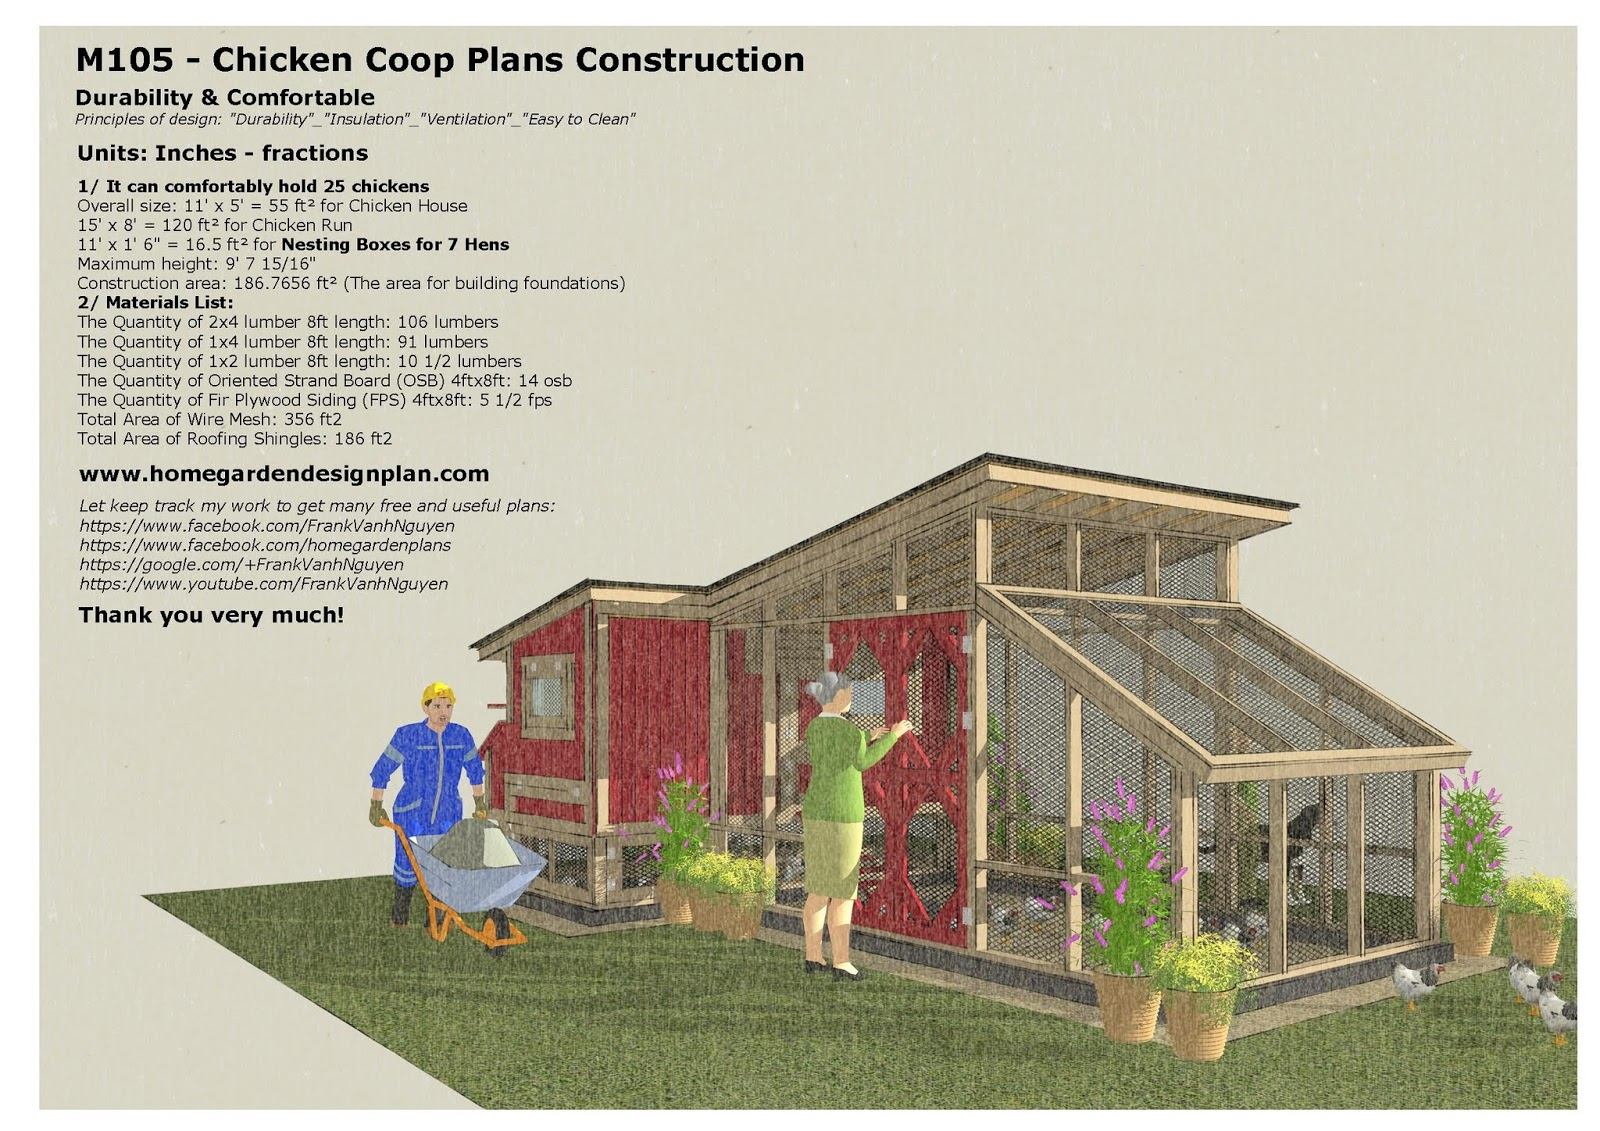 m105 chicken coop plans construction - Chicken Co Op Plans And Greenhouse